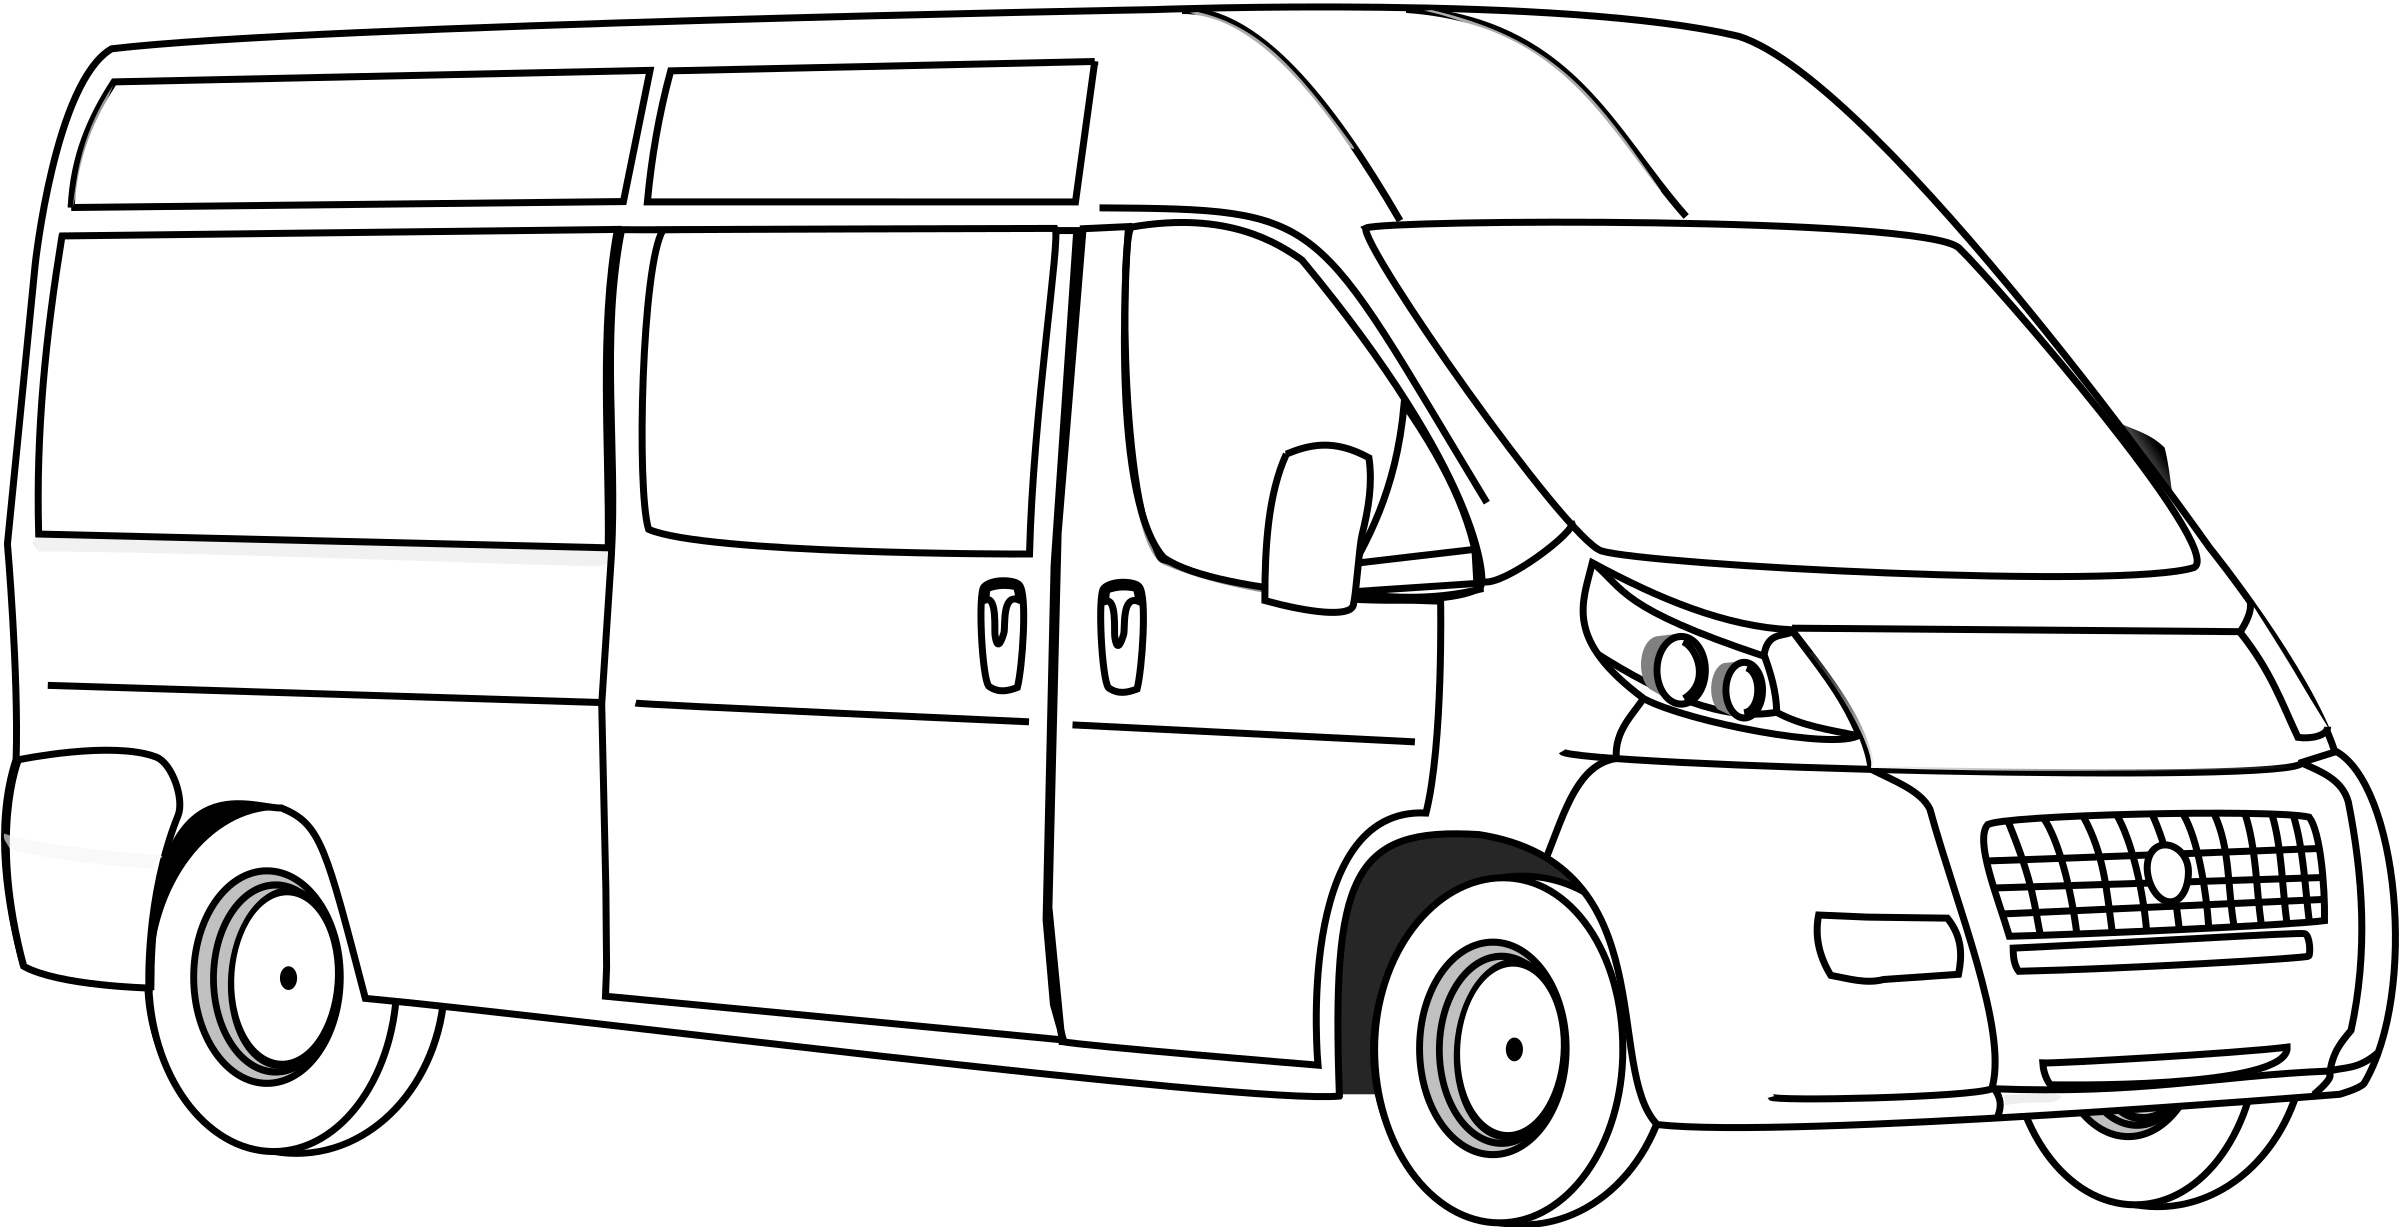 Van Line Art by gammillian